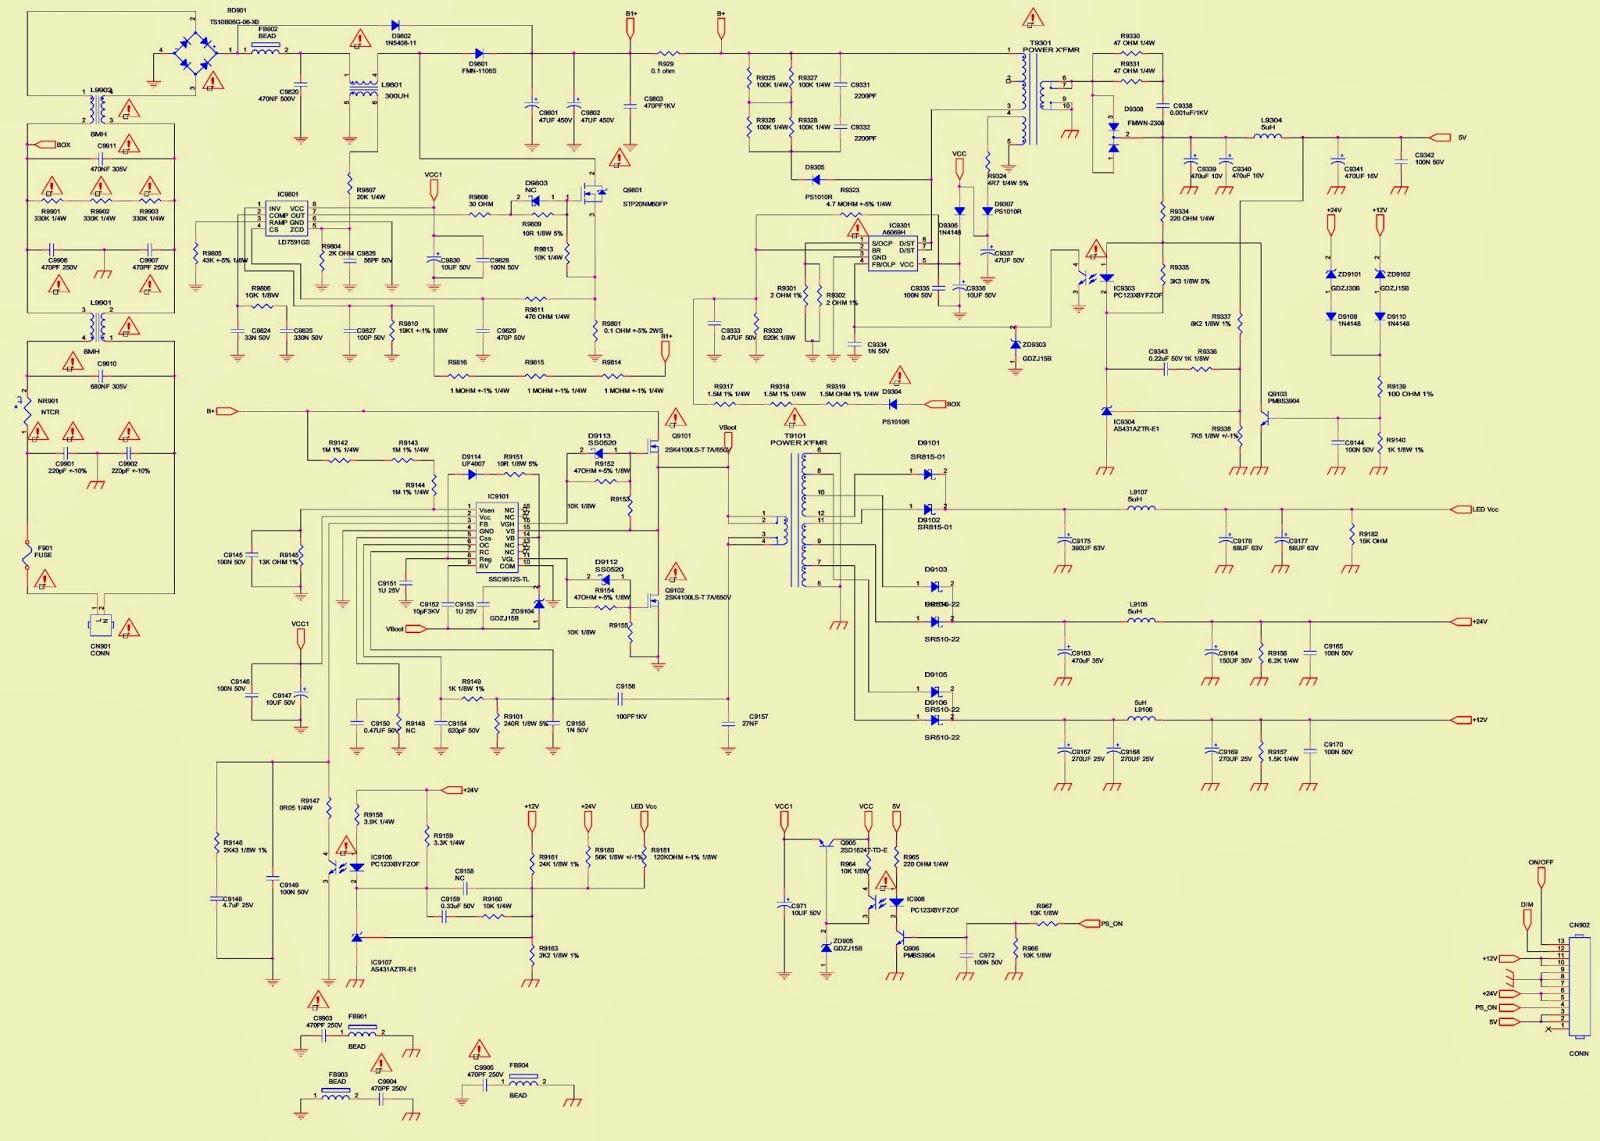 Dometic Capacitive Touch Thermostat Wiring Diagram besides Atec Haier 21 Inch Color Tv 21t5a Crt furthermore A6652 Microlab  puter Speaker System as well Draw Tite Wiring Diagram besides Razor Mx400 Parts. on troubleshooting diagrams